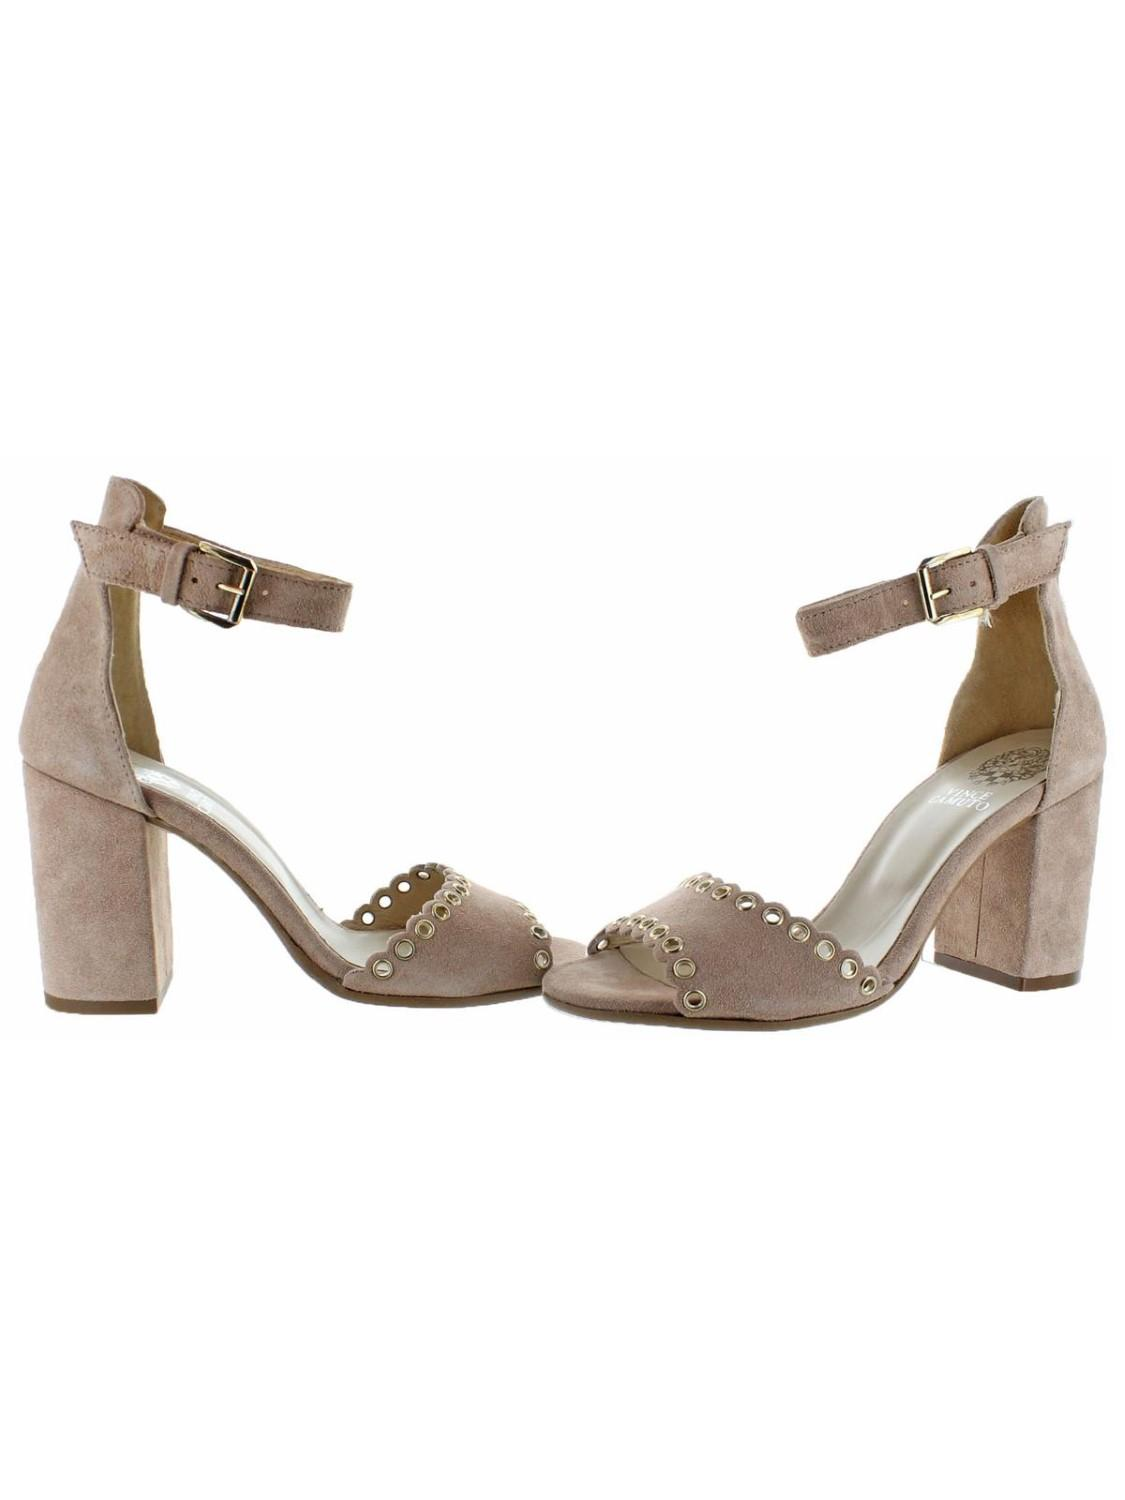 85b292d3f38 Lyst - Vince Camuto Missy Suede Open Toe Block Heel Dressy Sandal Shoes -  Save 18%